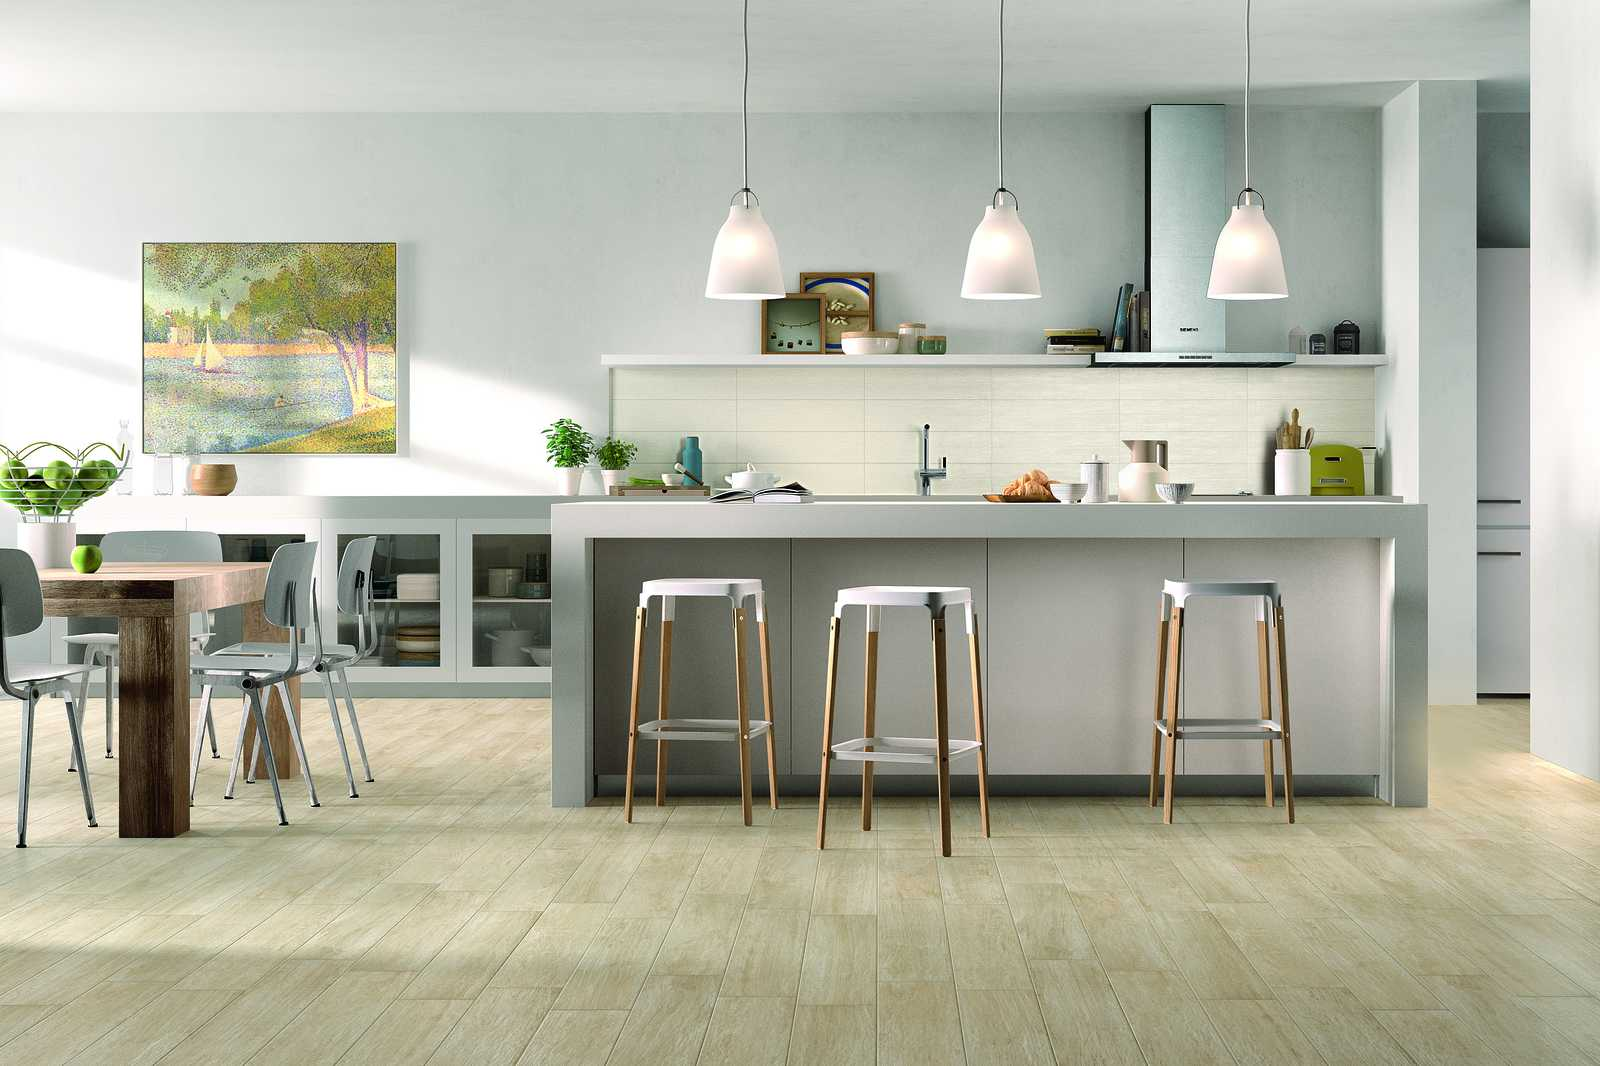 Woodcomfort collection wood look stoneware floor tiles for Gres porcellanato carrelage